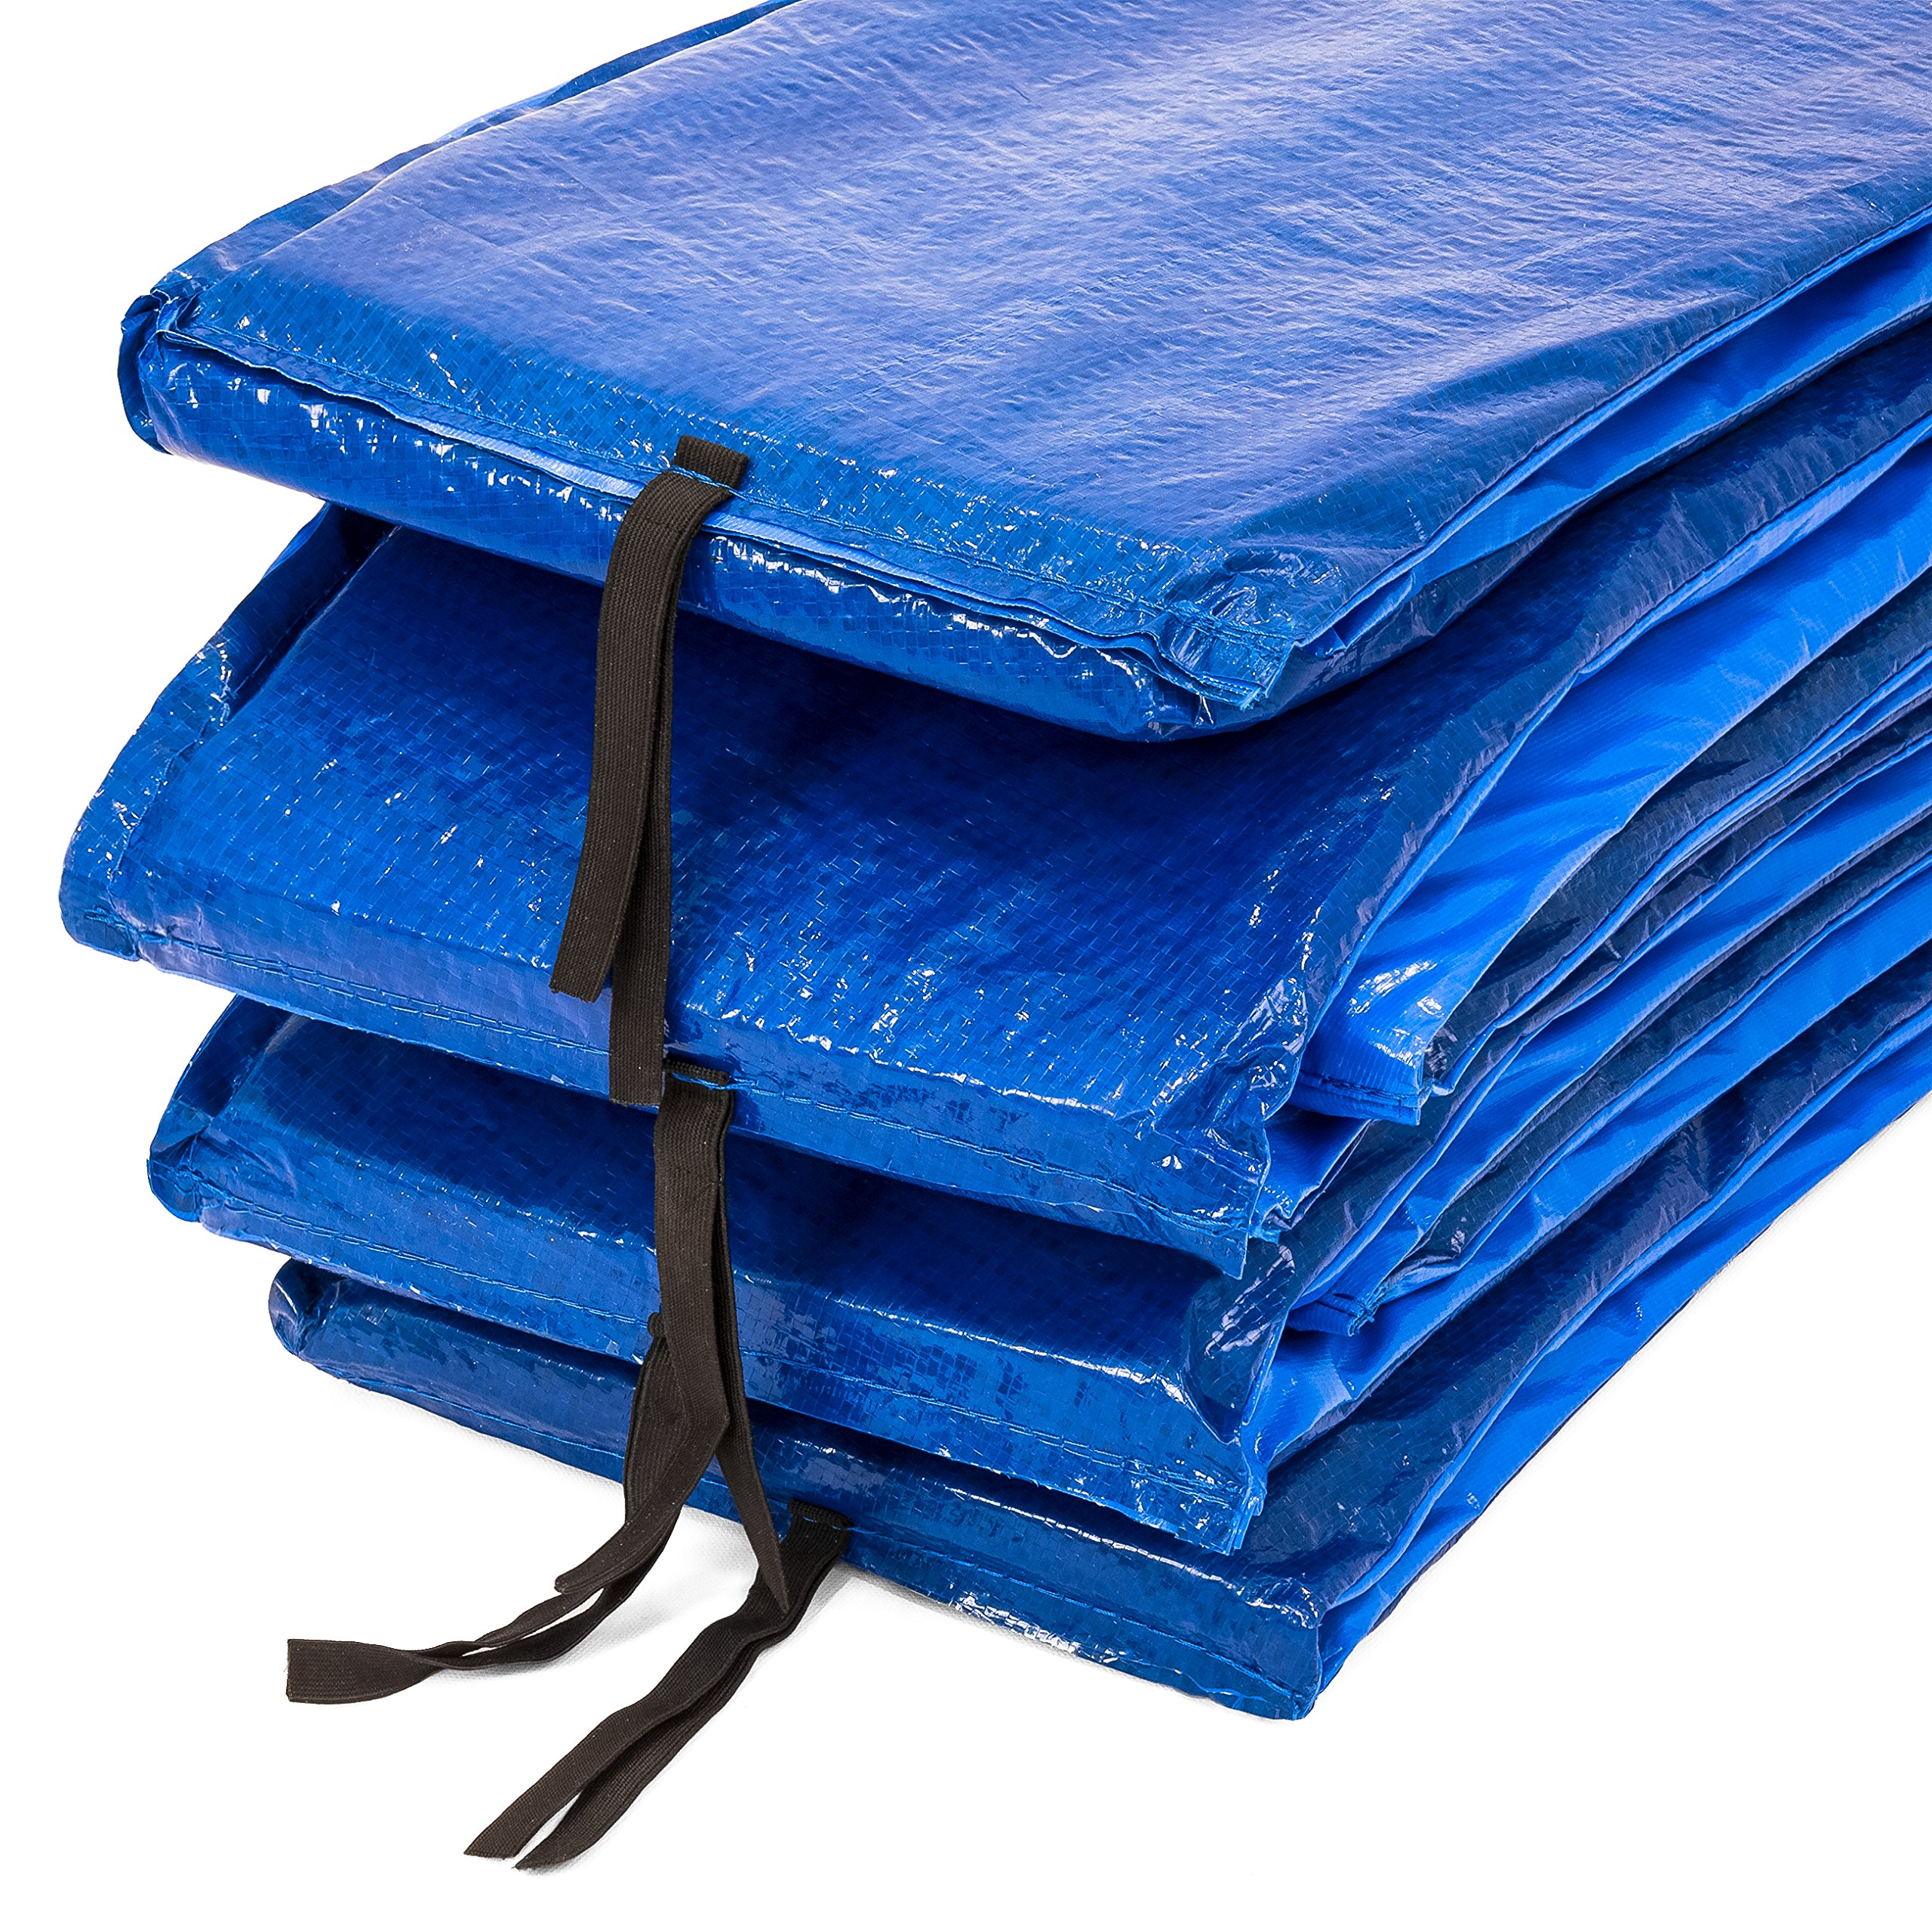 Best Choice Products 12ft Trampoline Safety Pad Spring Cover w/ 21mm Thick Foam Padding - Blue by Best Choice Products (Image #4)